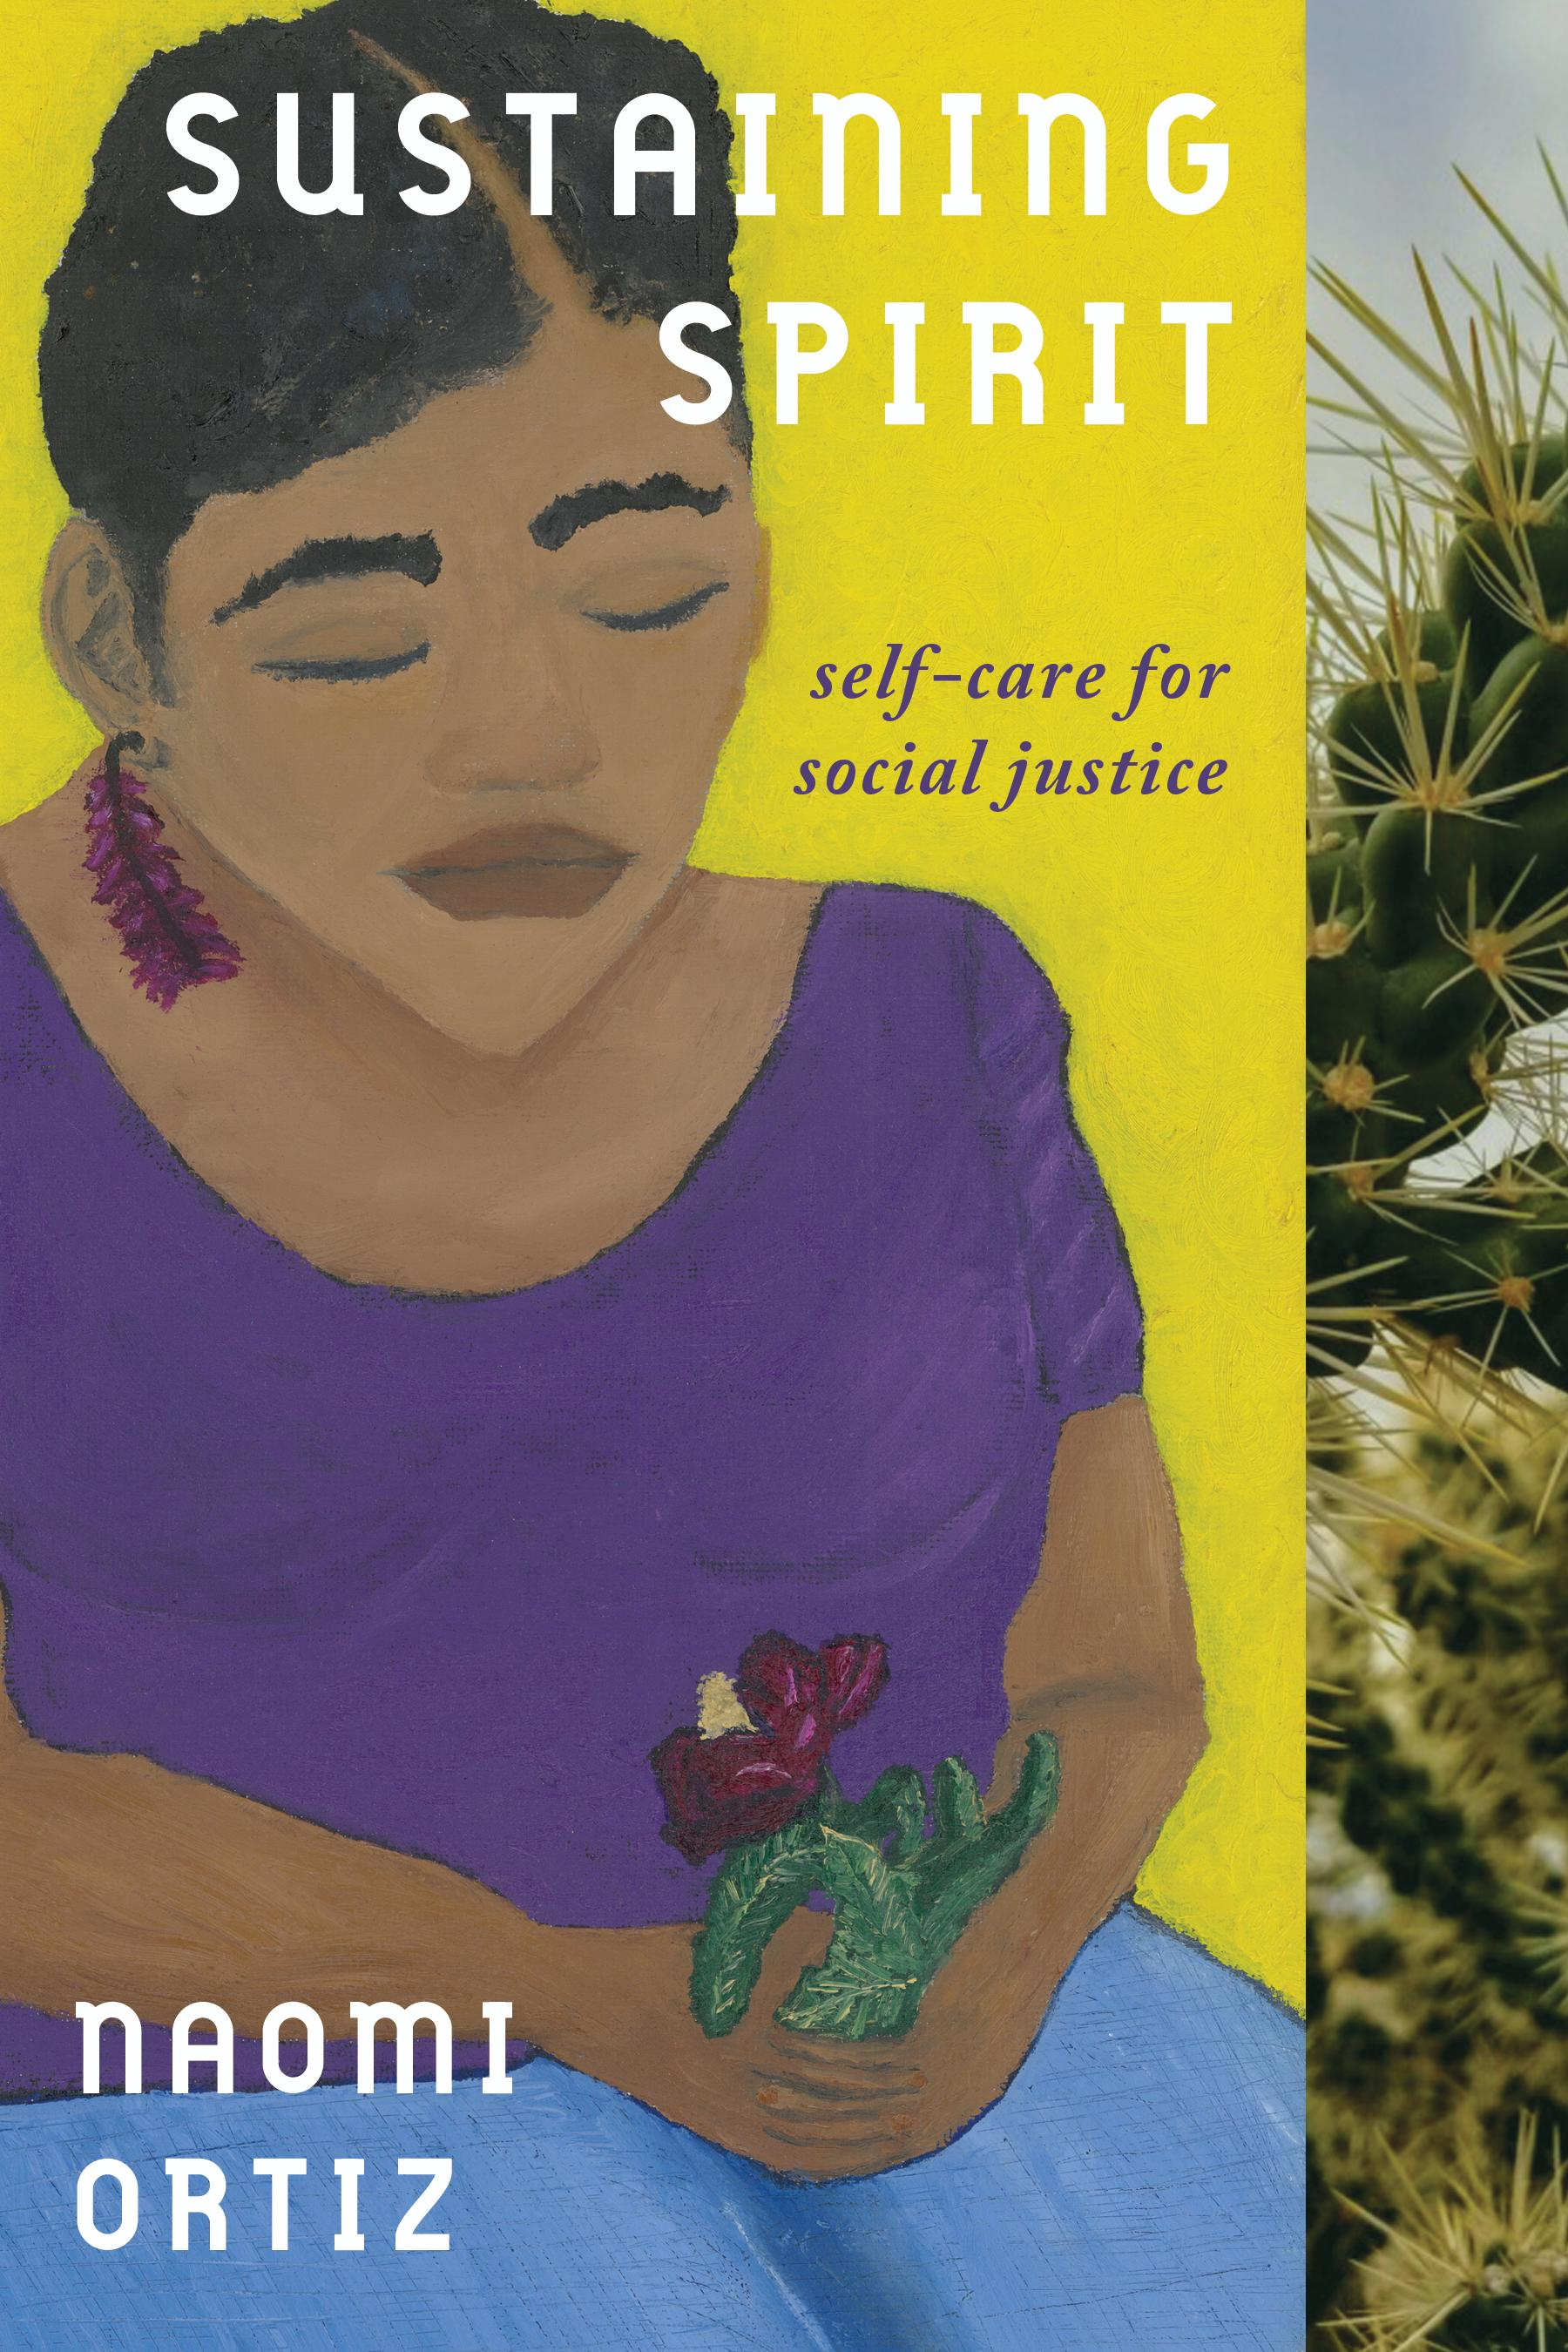 Painting by Naomi Ortiz of a brown skinned woman sitting holding a red cactus flower. Her eyes are closed. Next to the painting is a photograph of a spiky cactus. Over the painting is the text: Sustaining Spirit. Self-Care for Social Justice. Naomi Ortiz